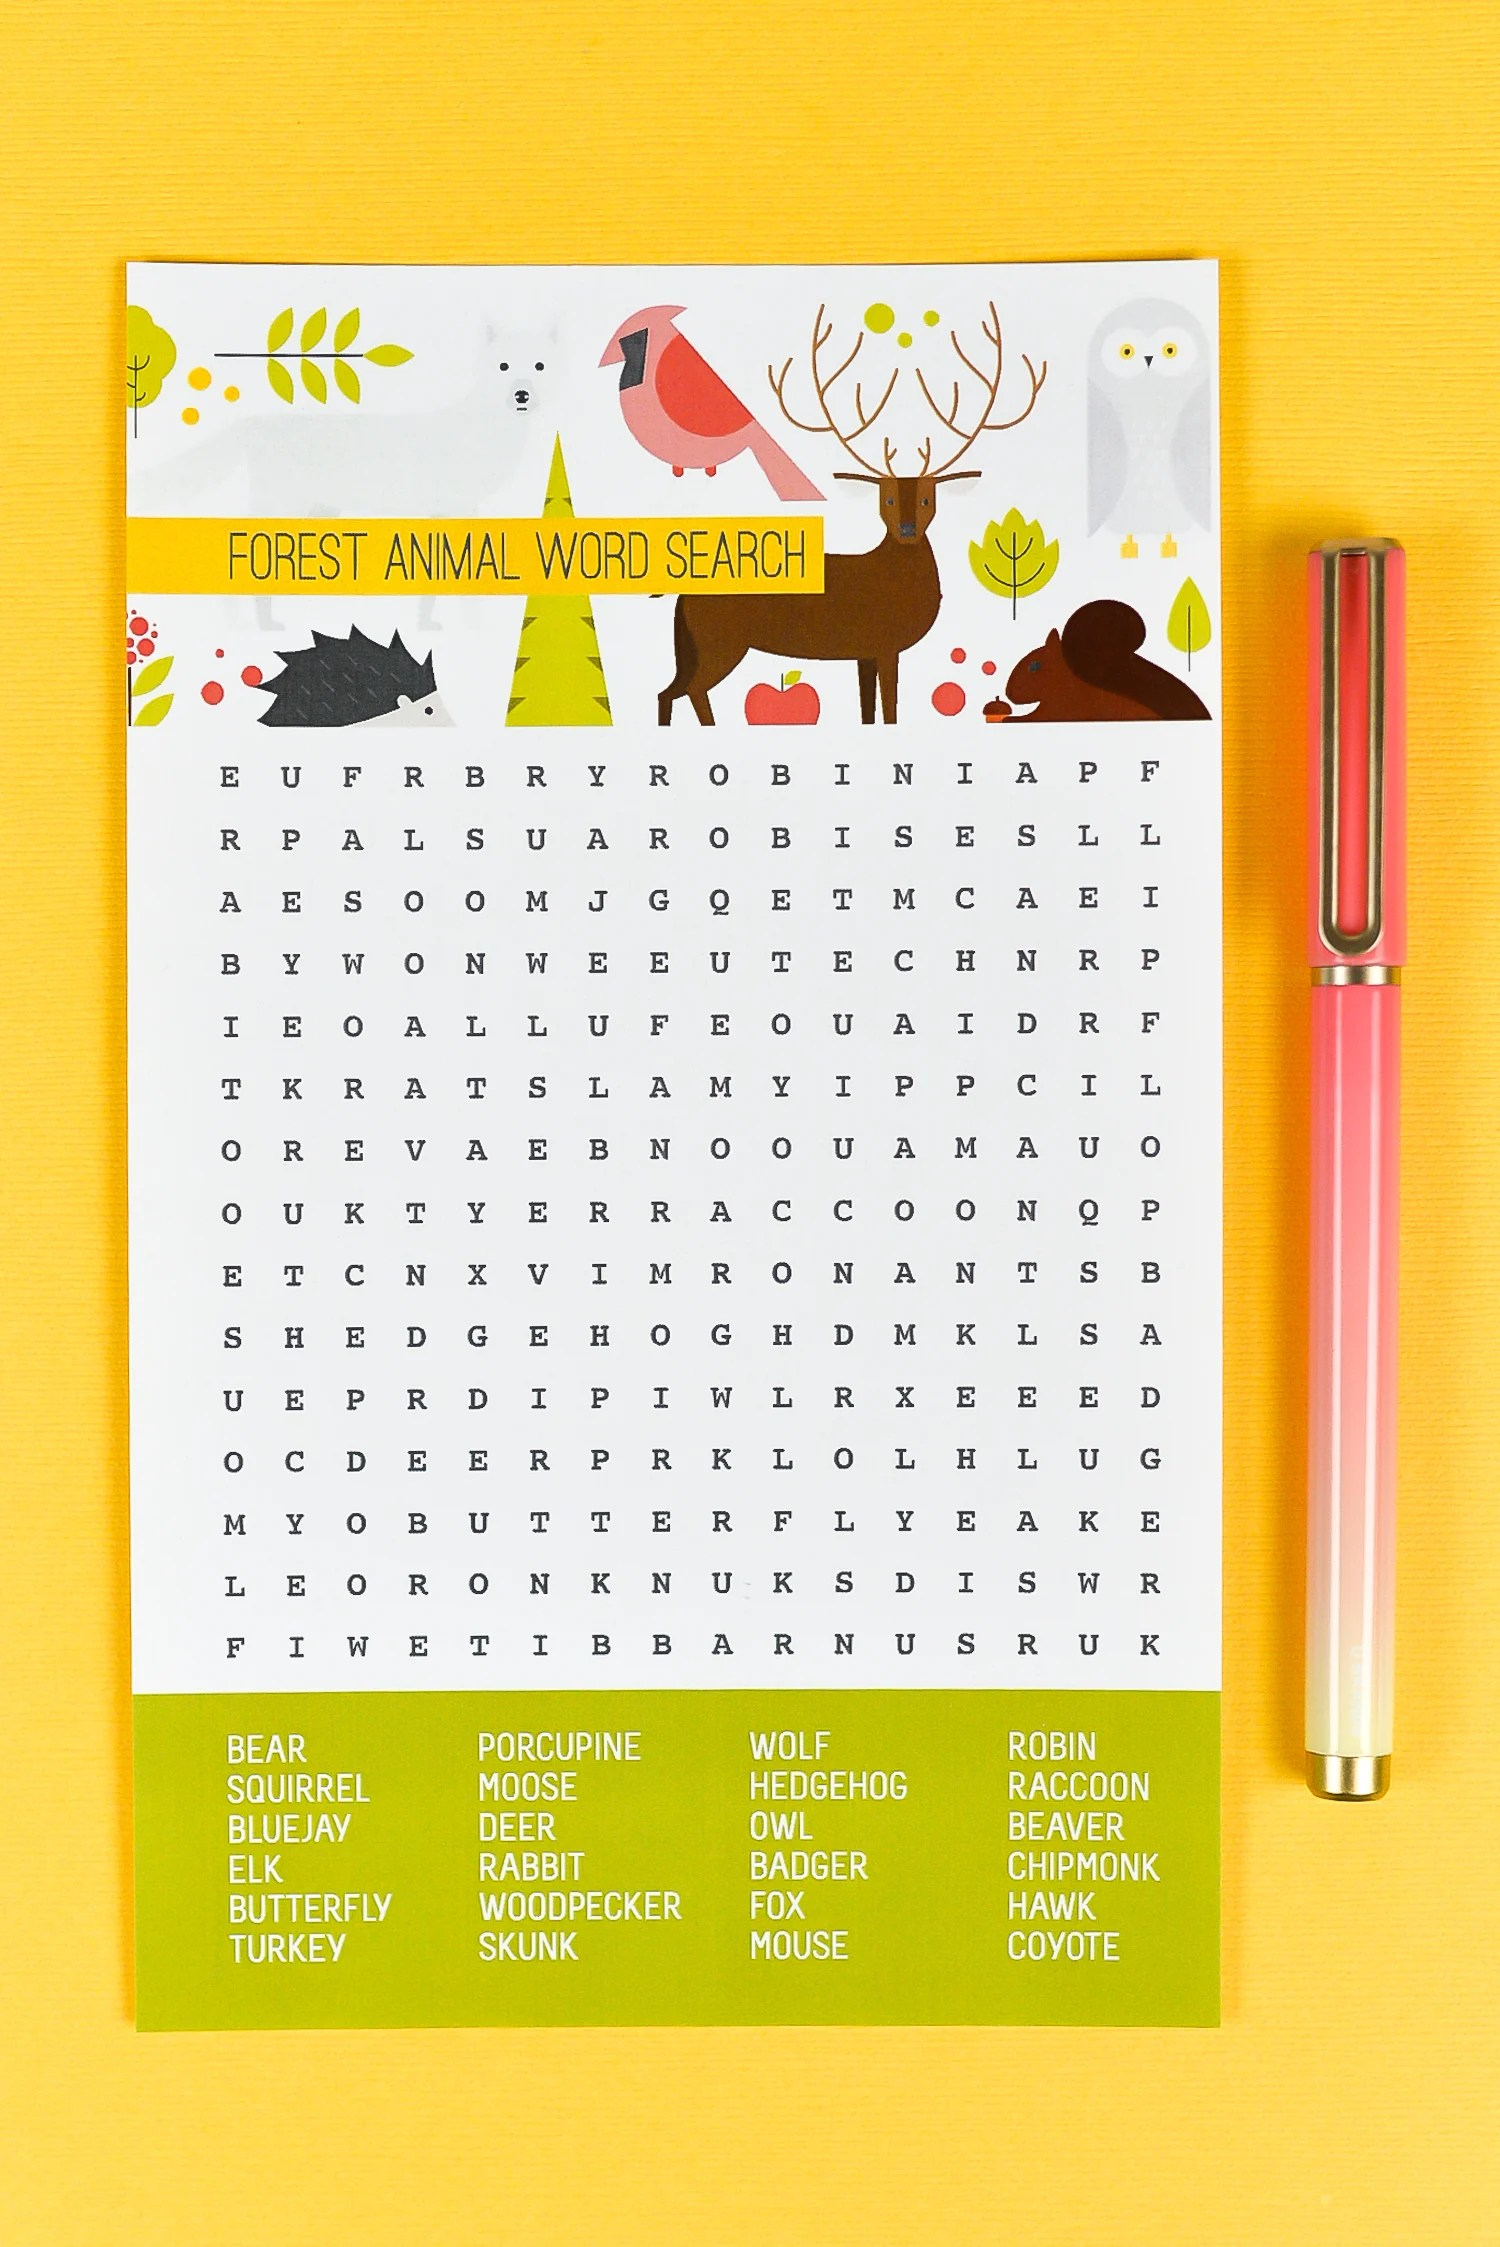 photograph about Animal Word Search Printable identify Totally free Printable Woodland Animal Term Look - Hey, Enables Generate